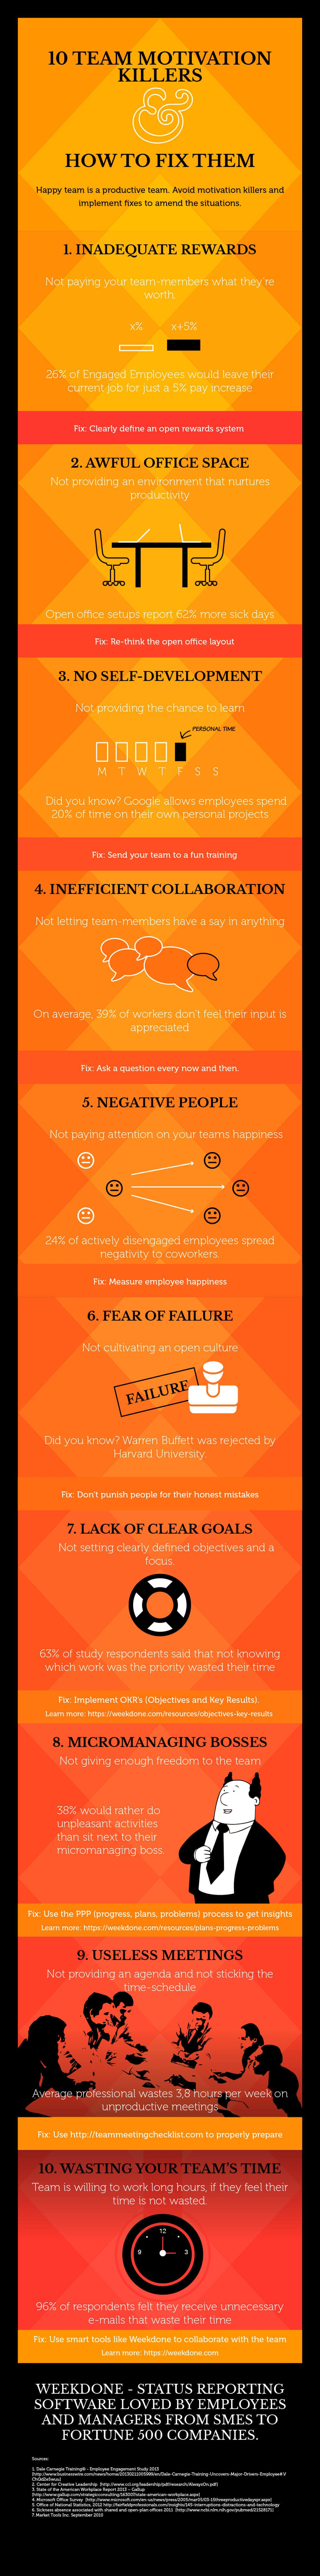 10 TEAM MOTIVATION KILLERS - Infographic